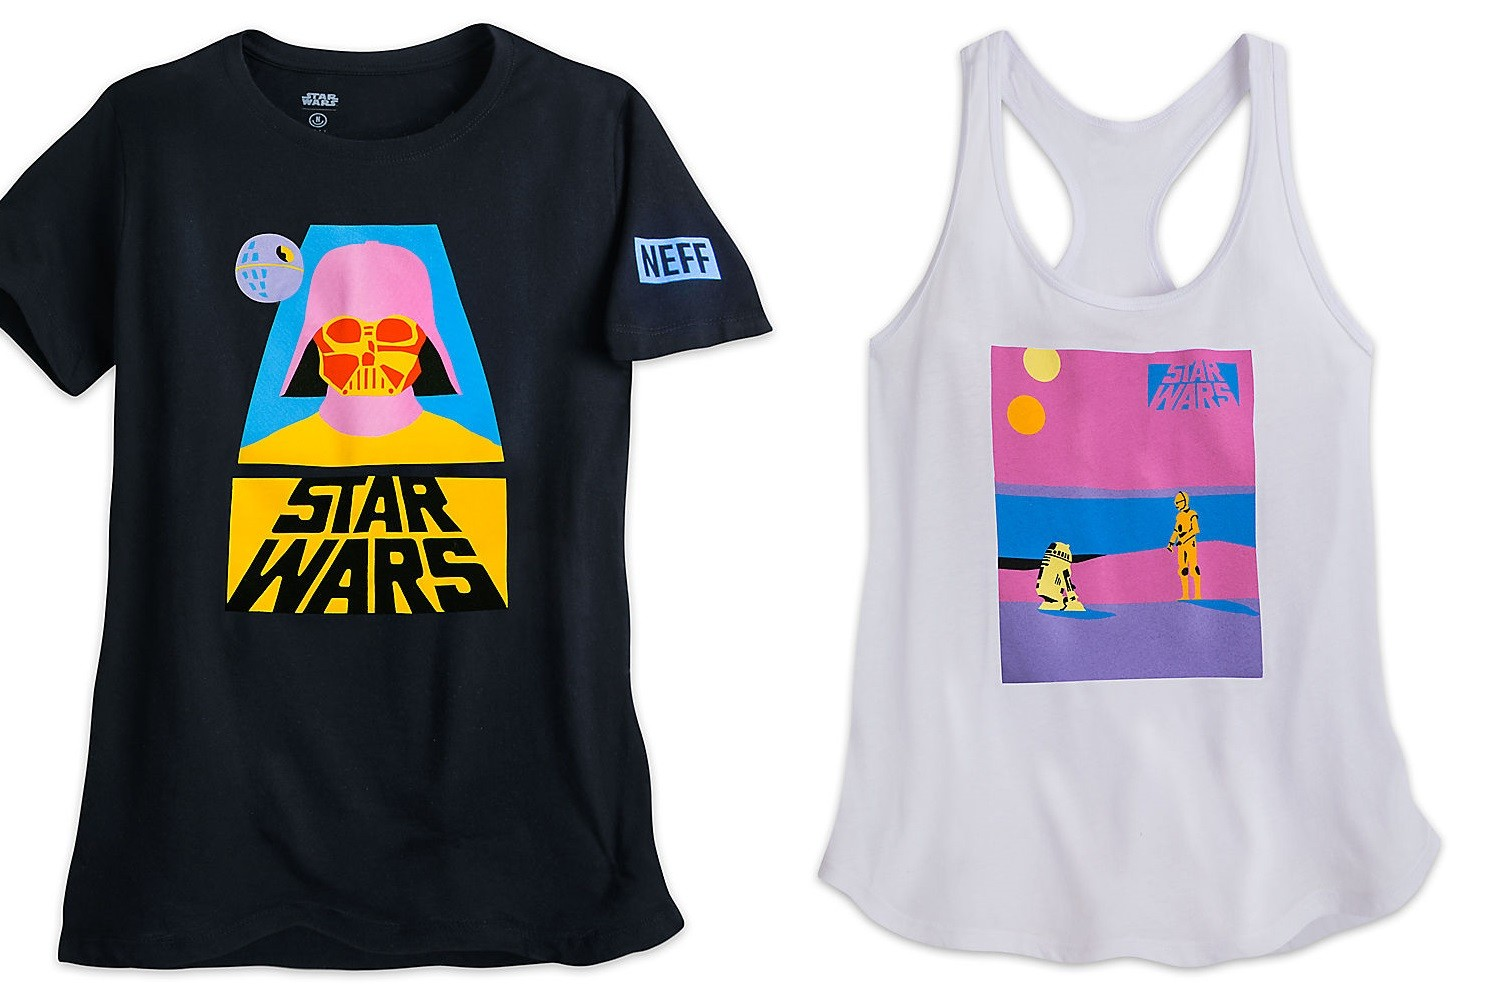 NEFF x Star Wars fashion at Disney Store